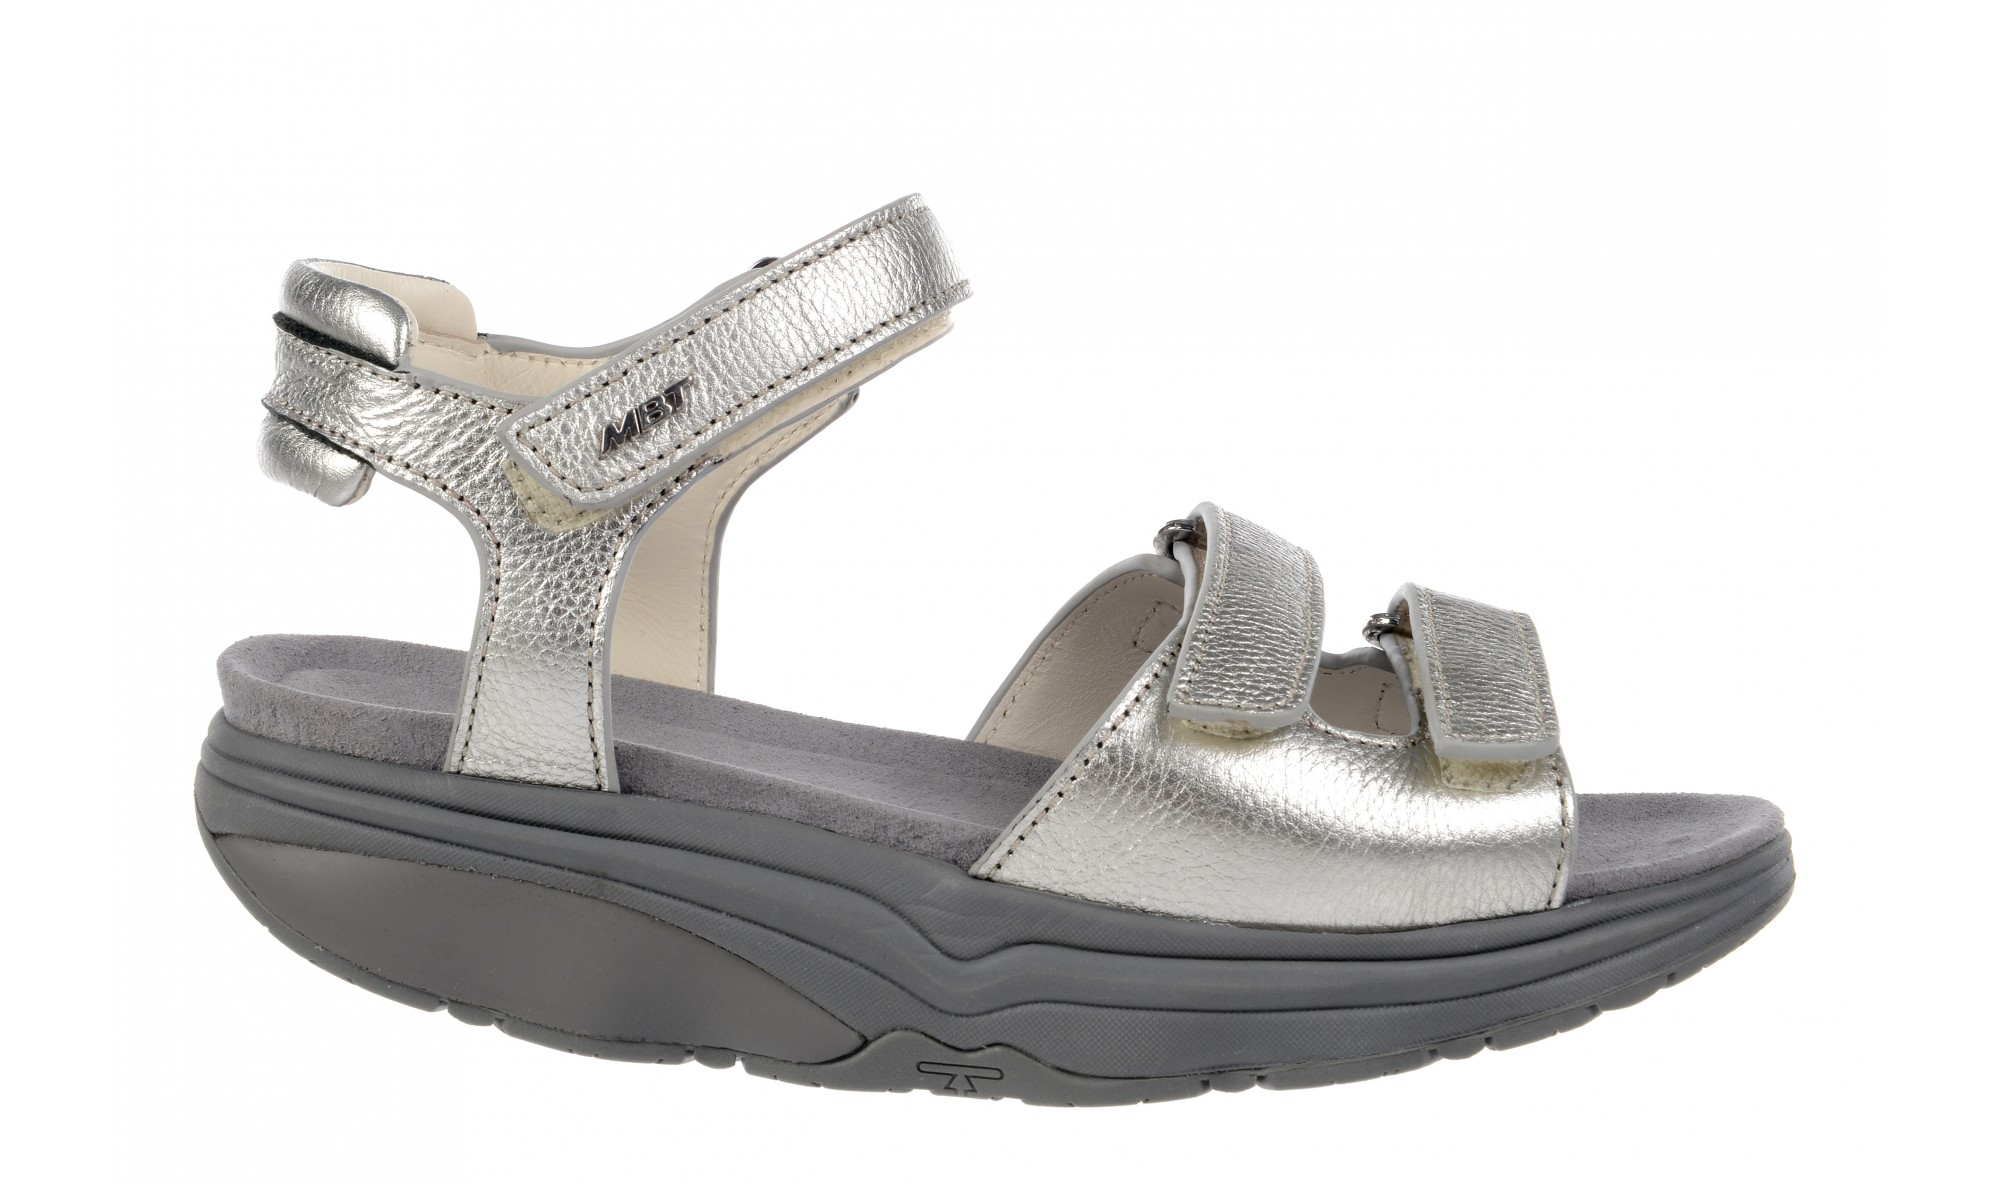 MBT Women's Hanuni 6 Double Strap Silver